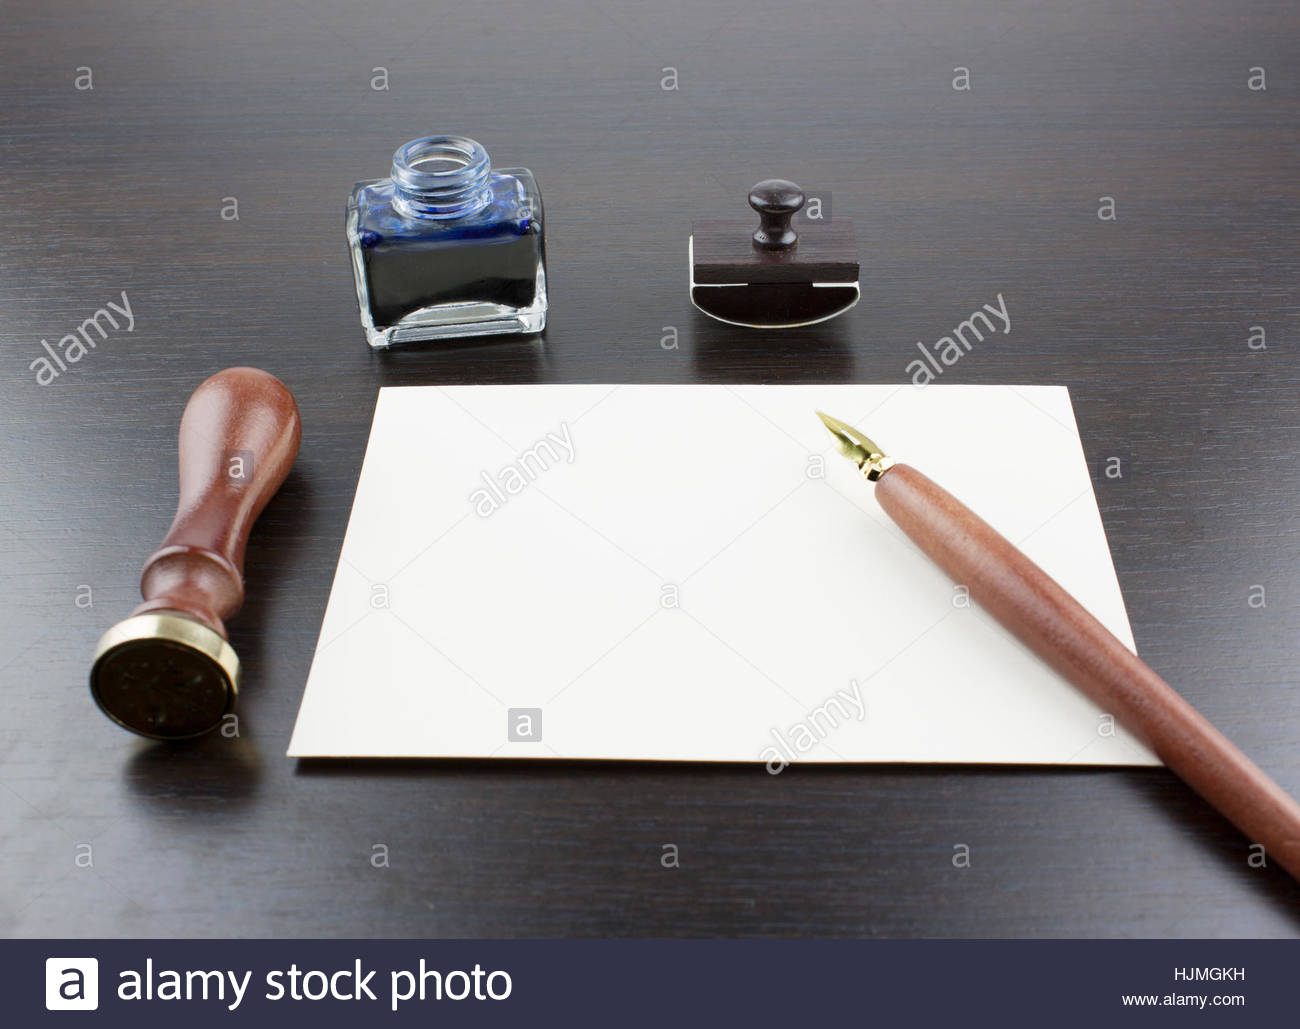 Pens, ink pot, papyrus and blotting paper on a brown table Stock Photo